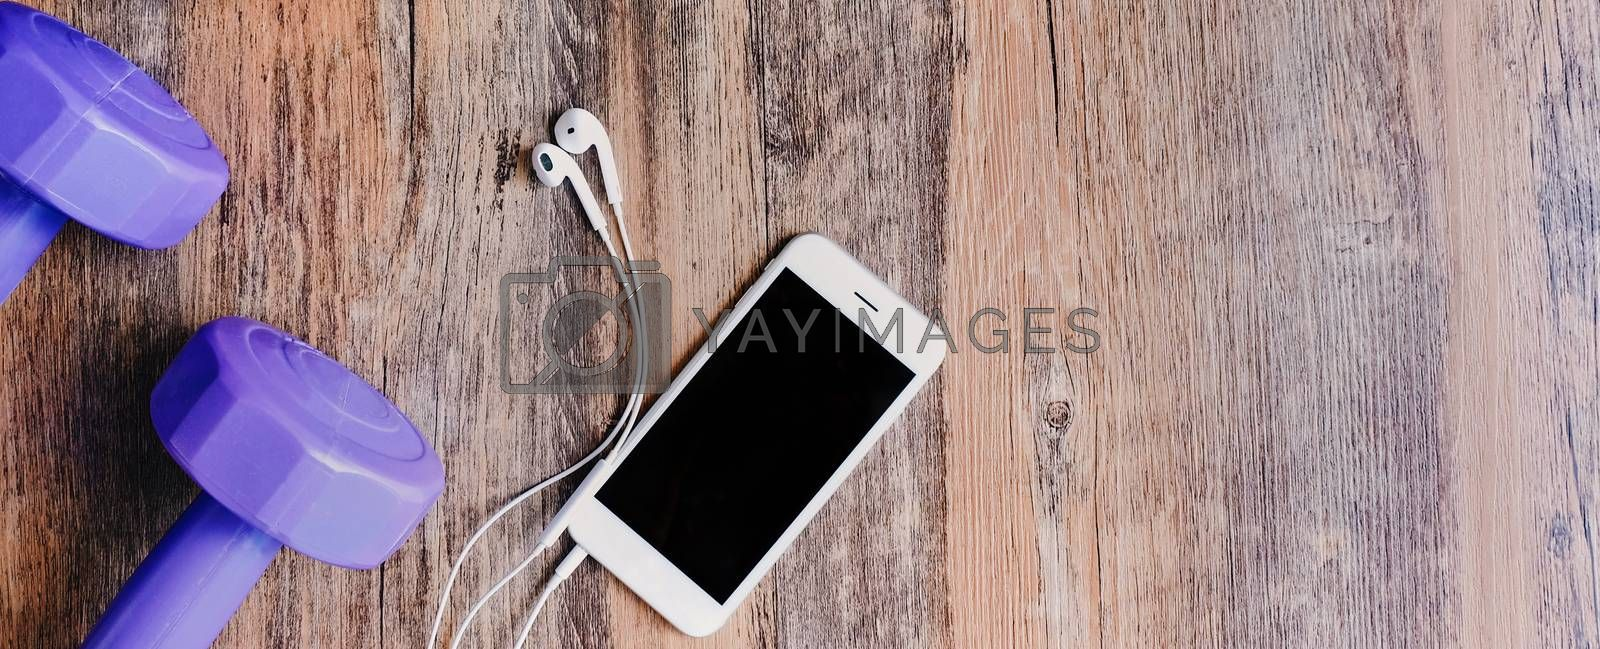 Top view of flat lay fitness items with smartphone, earphones and dumbbell on wooden background, photo banner for website header design with copy space for text